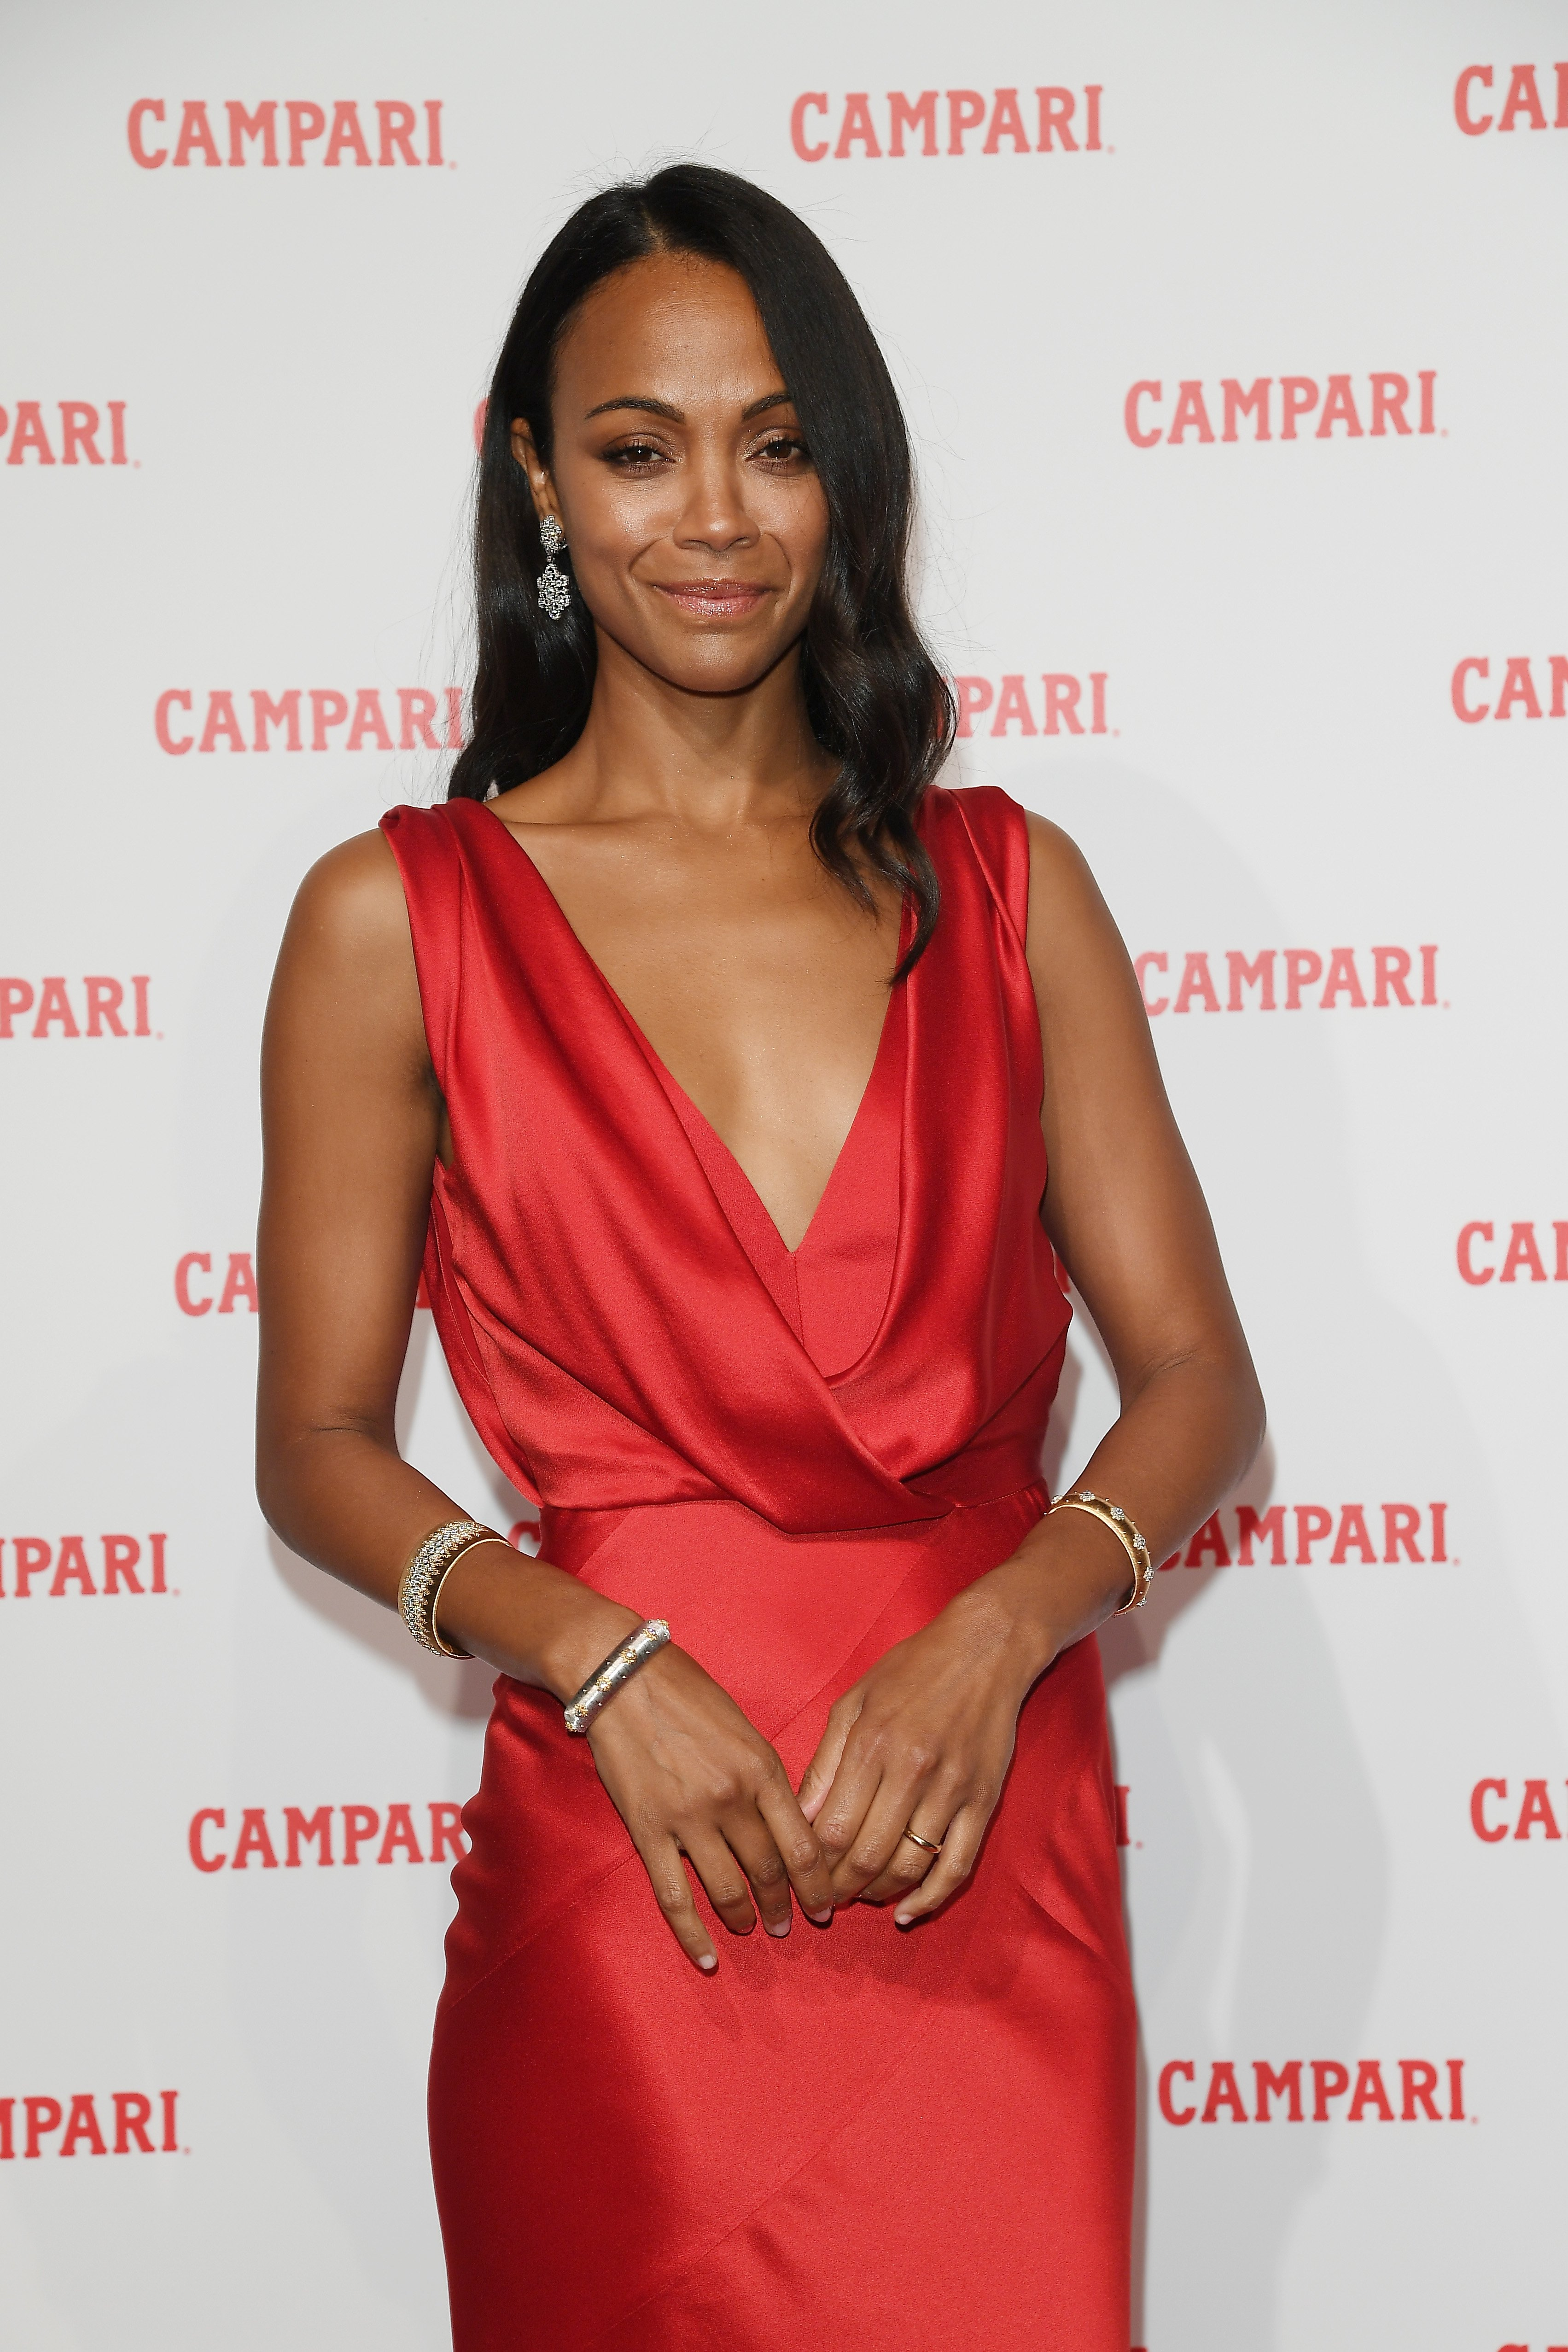 Zoe Saldana attends the premiere for the Campari Red Diaries short movie, 'The Legend of Red Hand.' | Photo: GettyImages